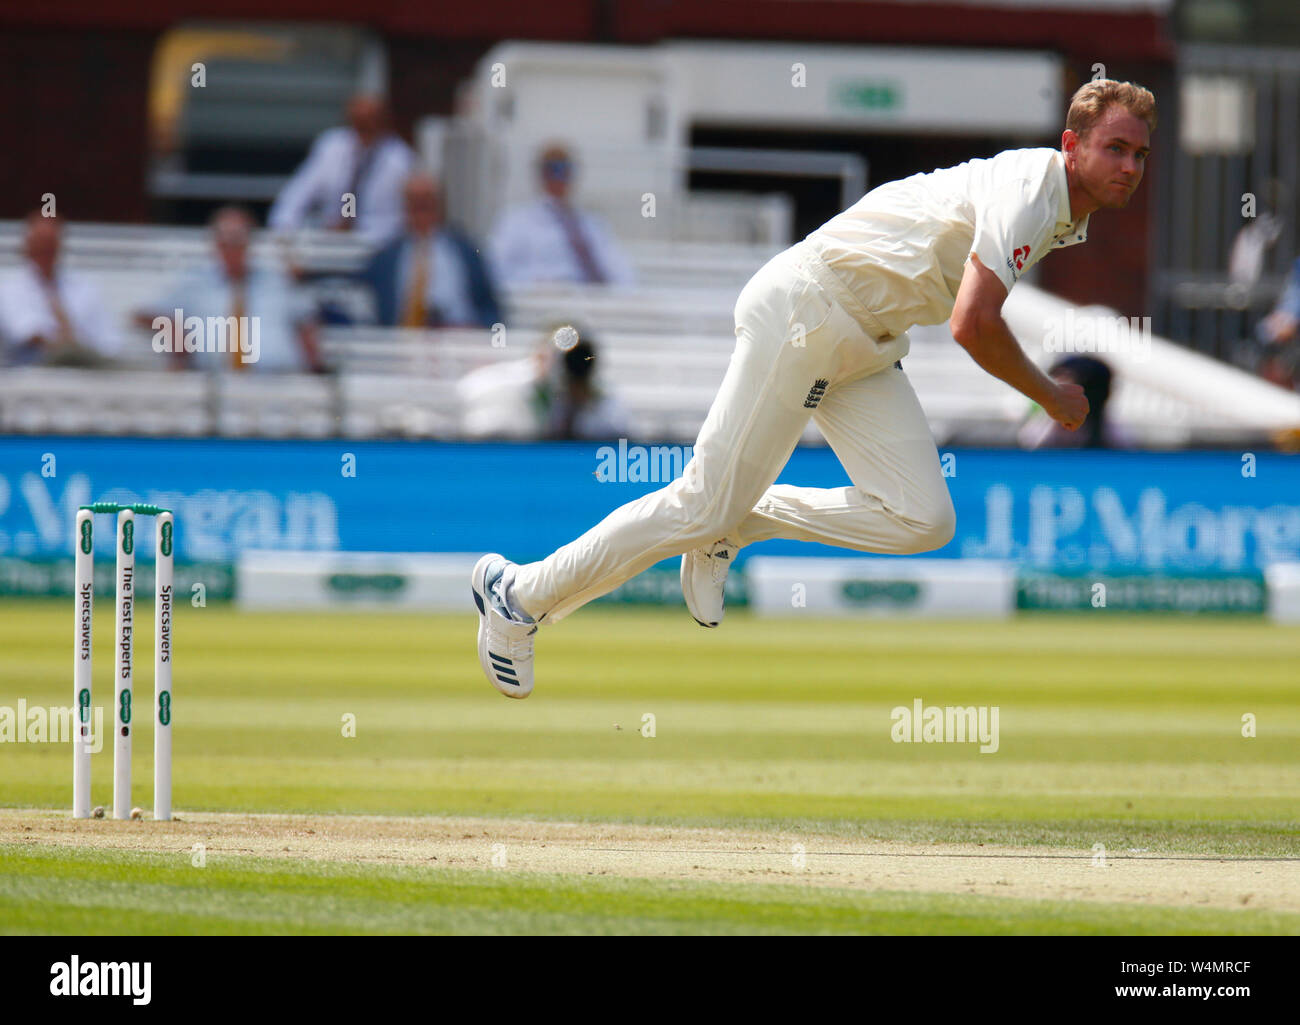 London, UK. 24th July, 2019. LONDON, ENGLAND. JULY 24: Stuart Broad of England during International Test Match Series Day One between England and Ireland at the Lord's Cricket Ground on July 24, 2019 in London, England. Credit: Action Foto Sport/Alamy Live News Stock Photo